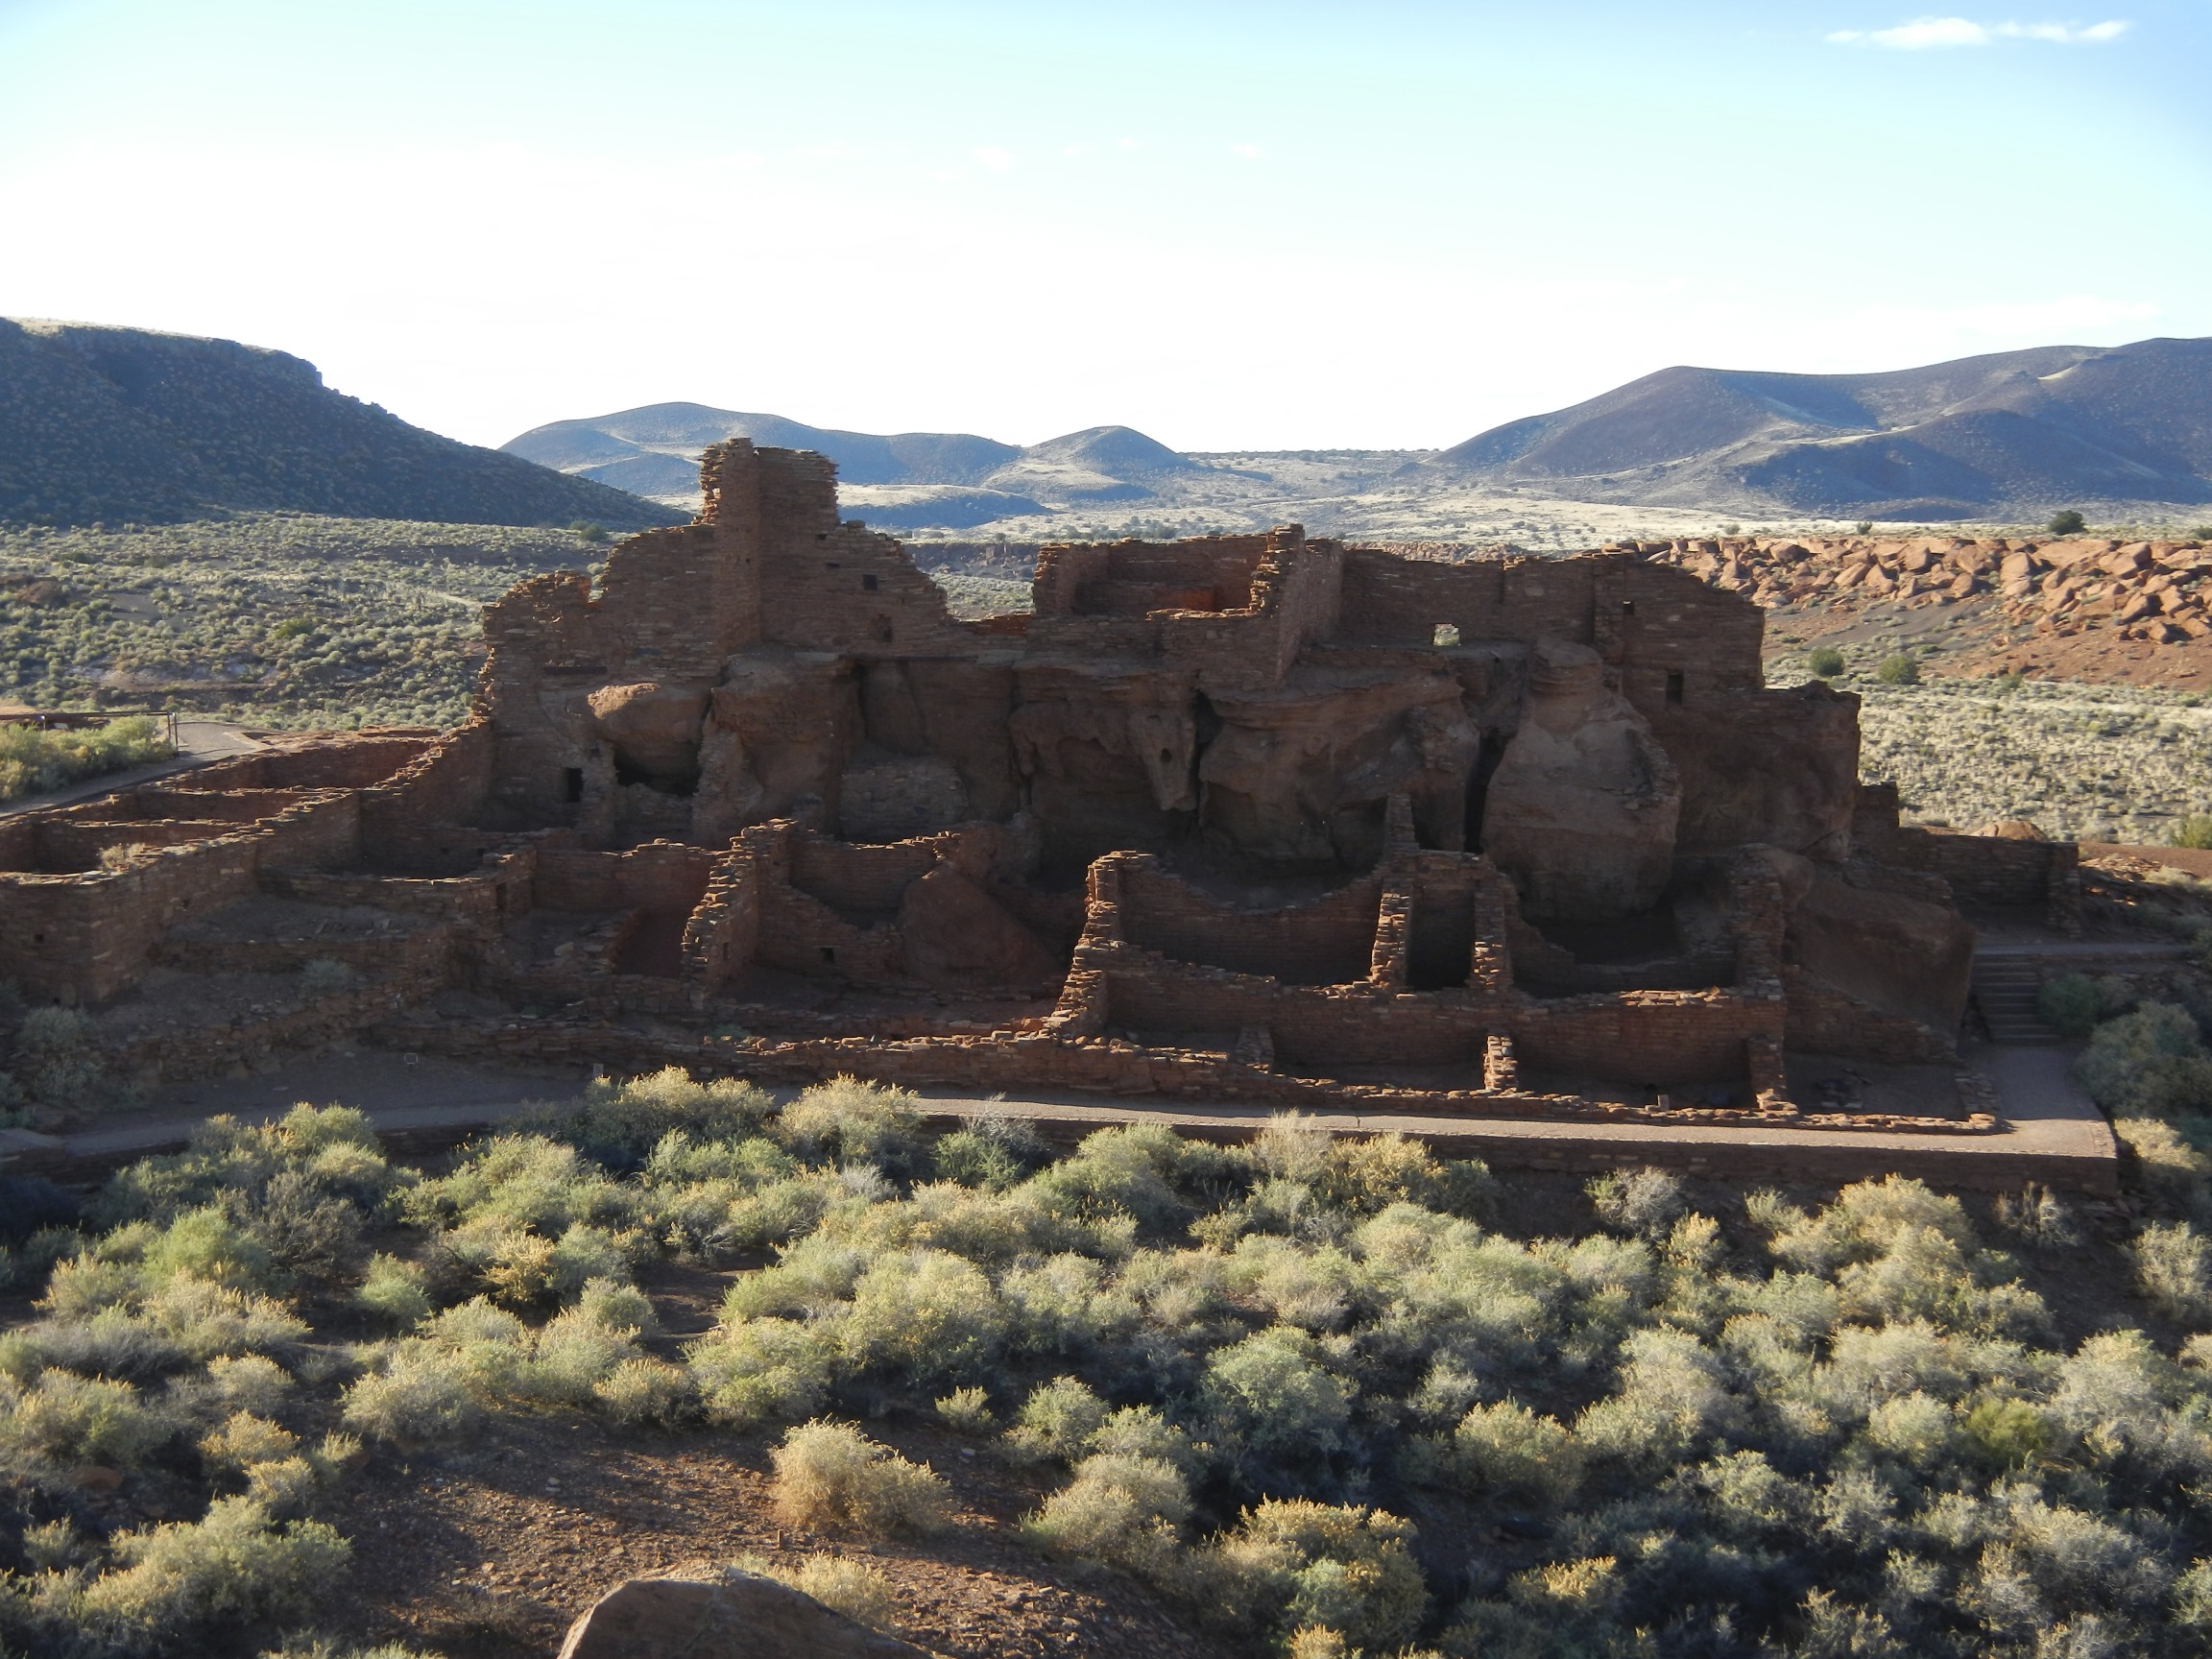 Driving by the Wupatki Ruins